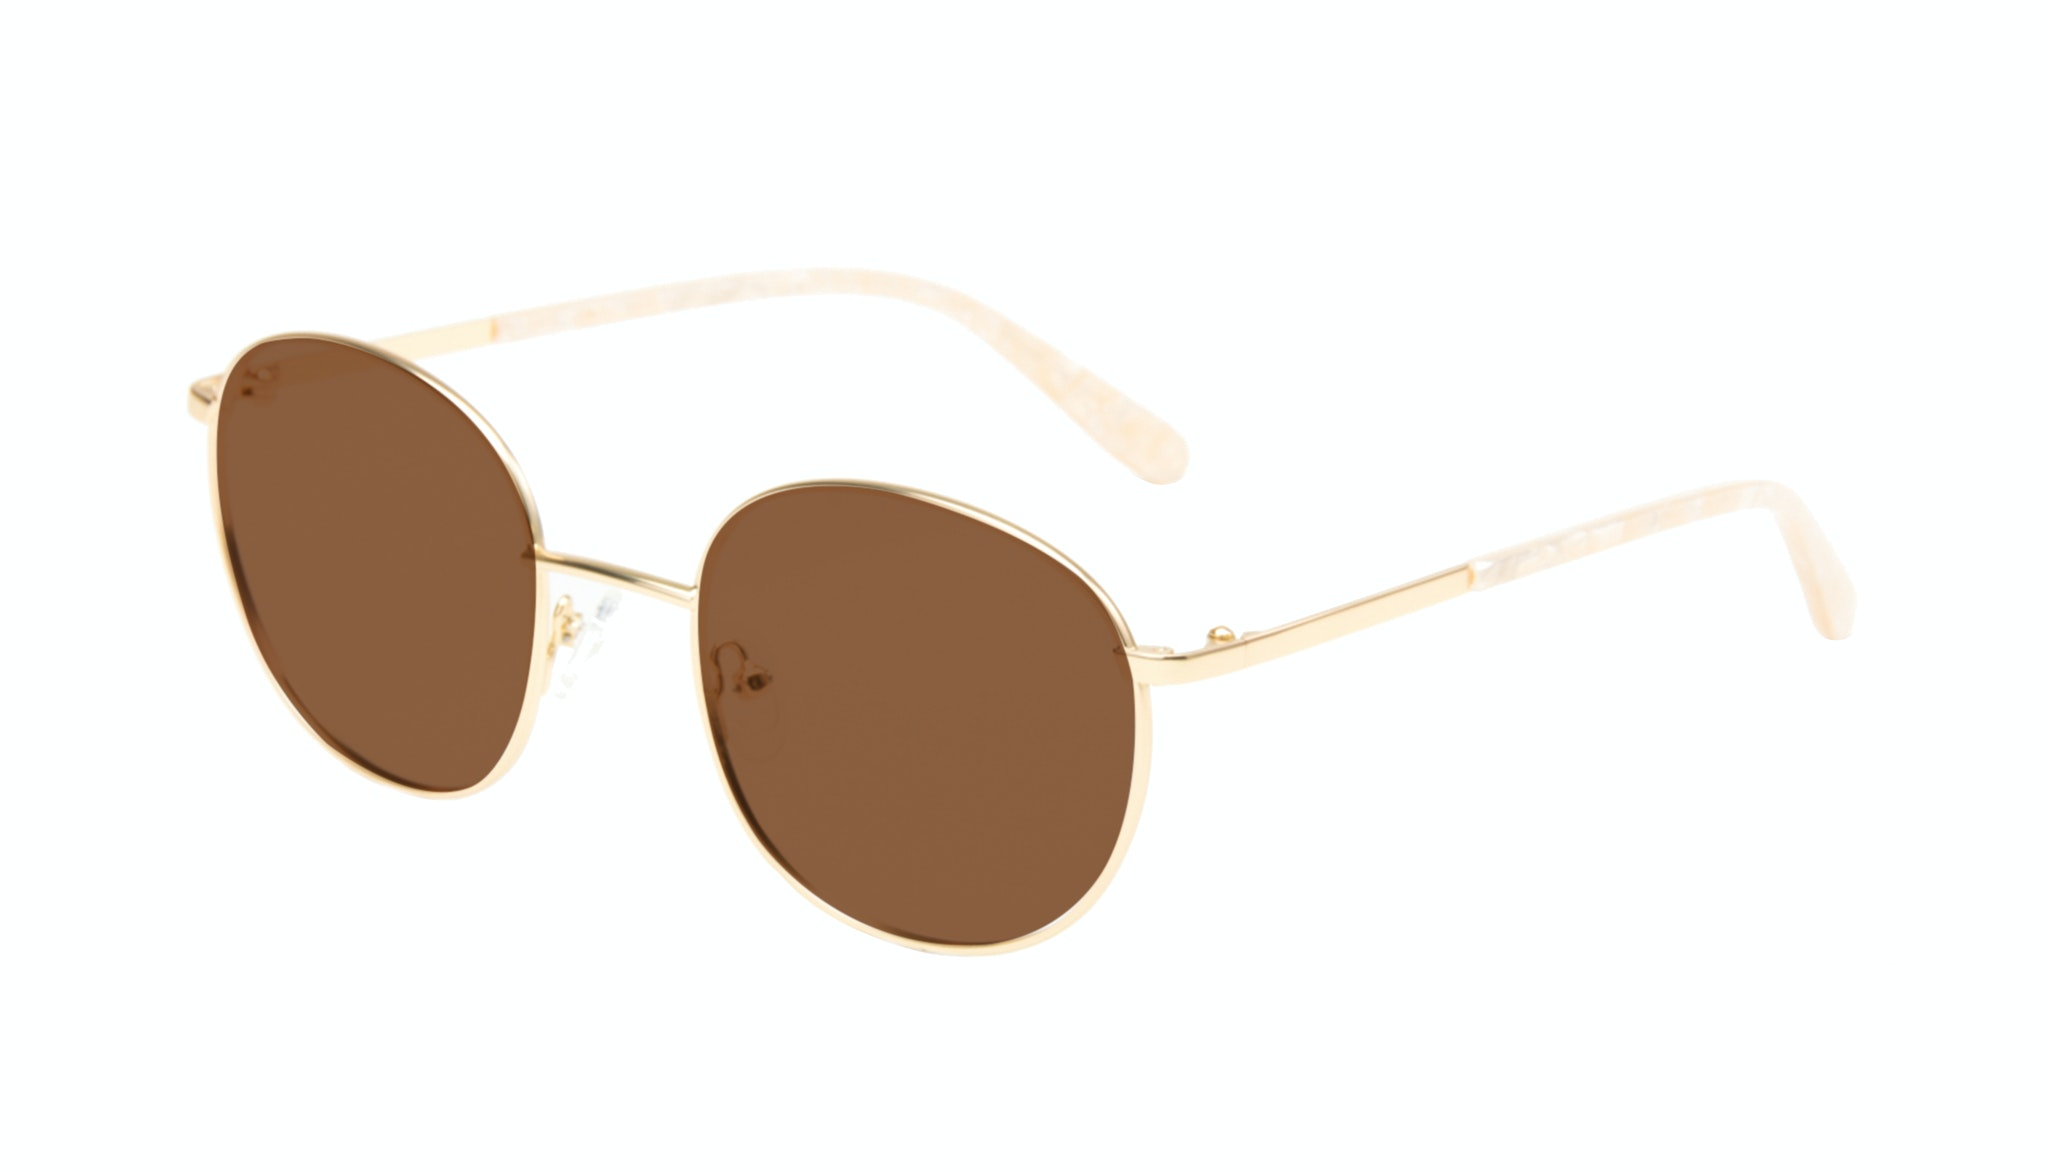 Affordable Fashion Glasses Round Sunglasses Women Joy Gold Marble Tilt